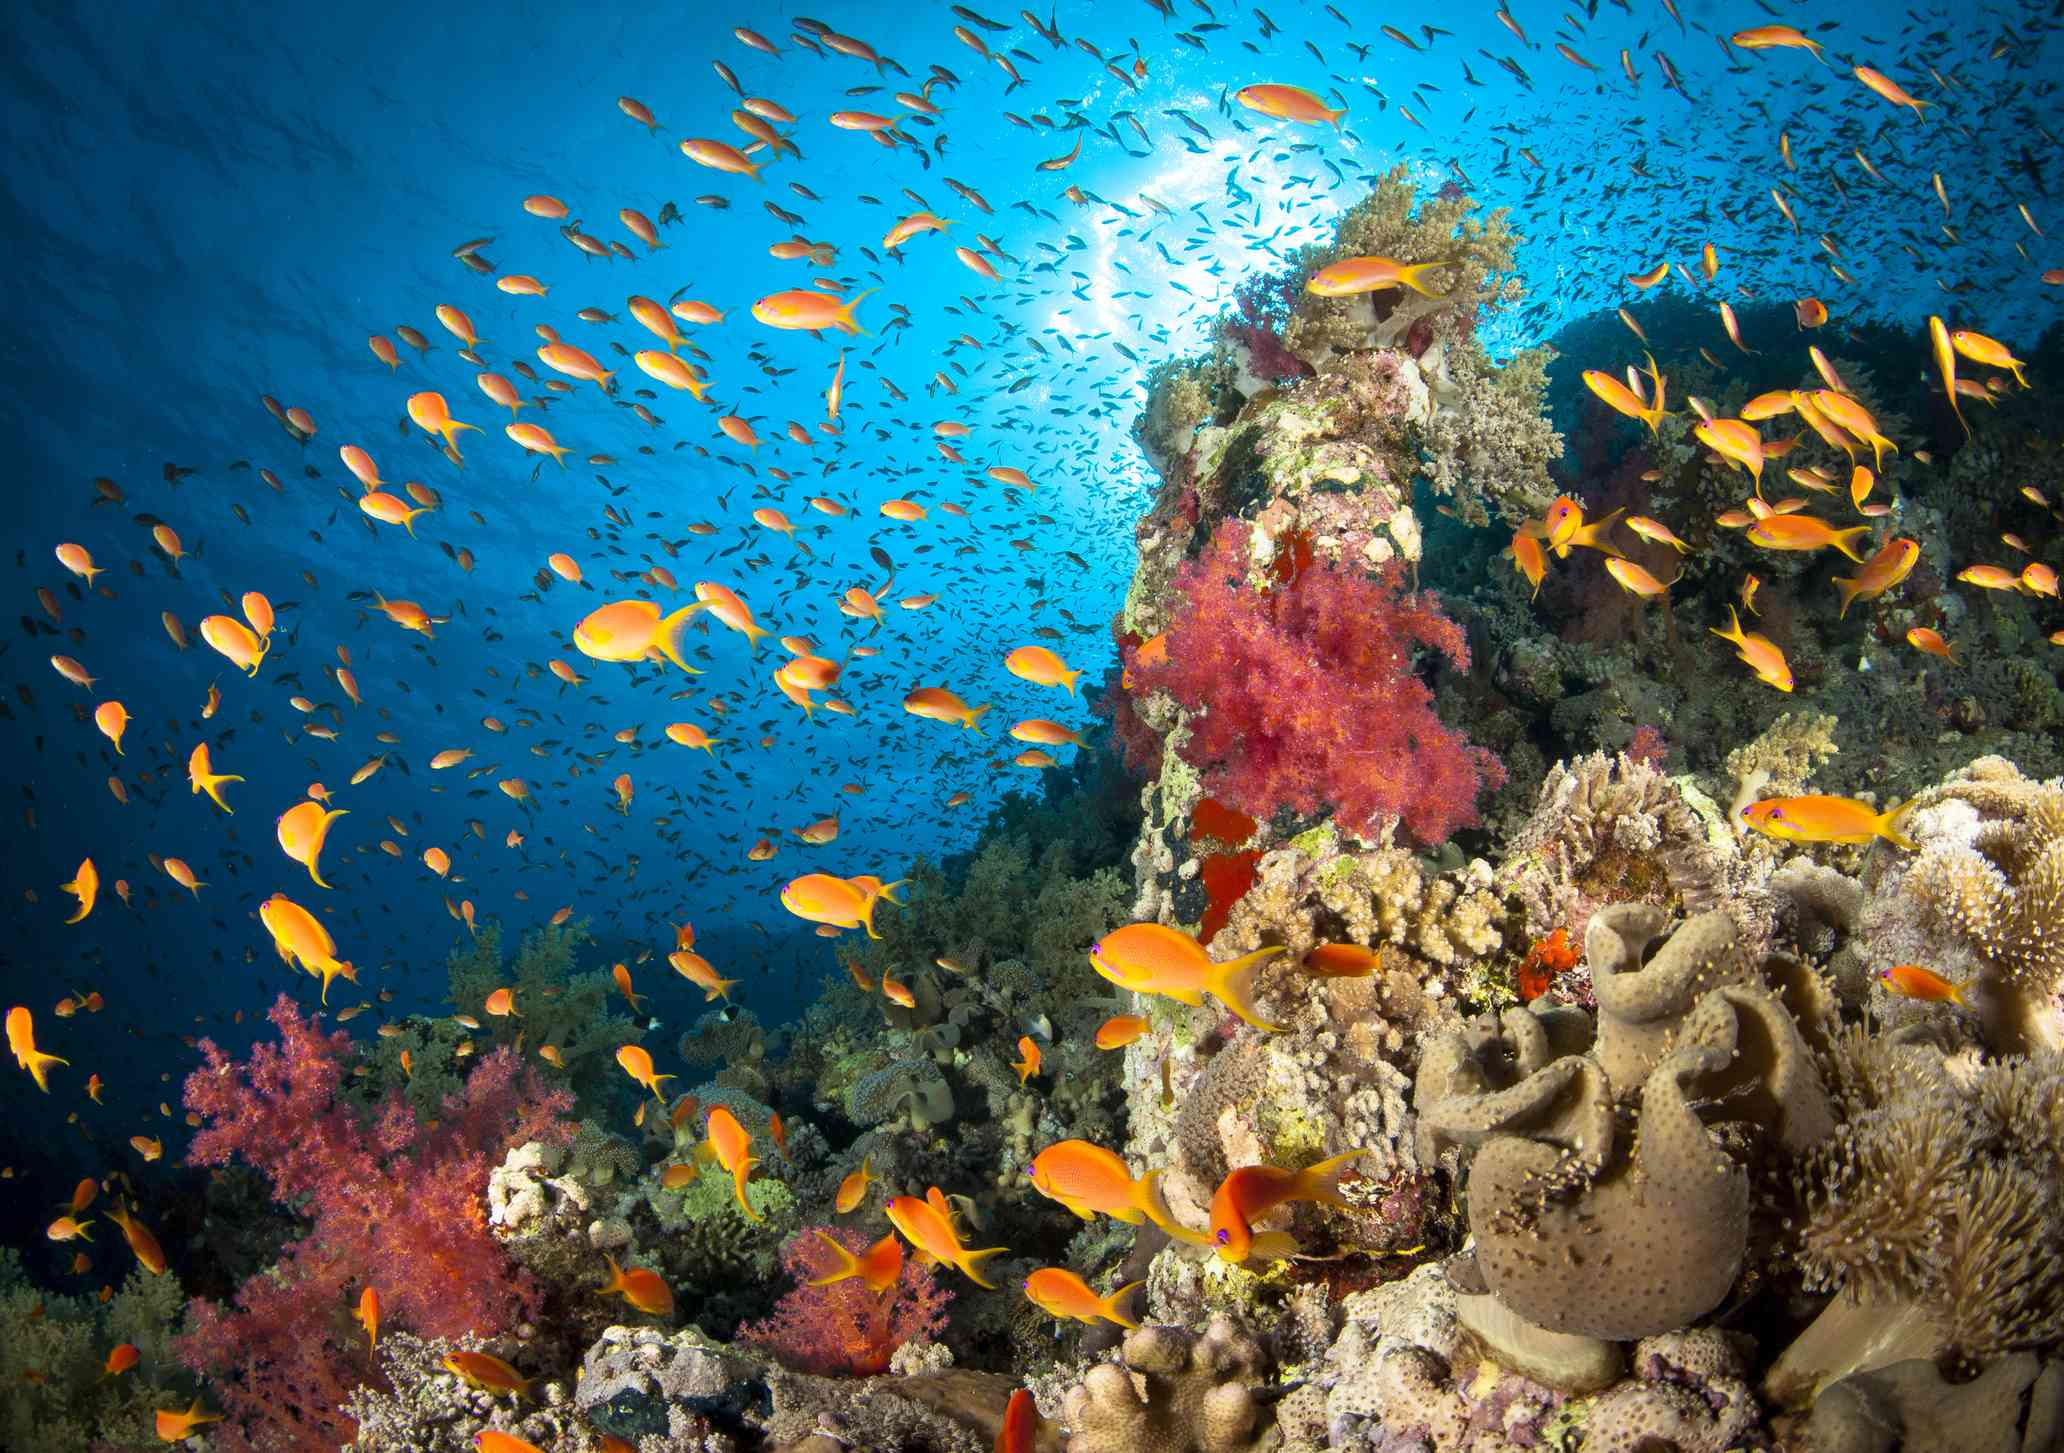 a reef teeming with orange fish amidst a variety of red, green, and tan hard and soft corals with the bright blue Red Sea above